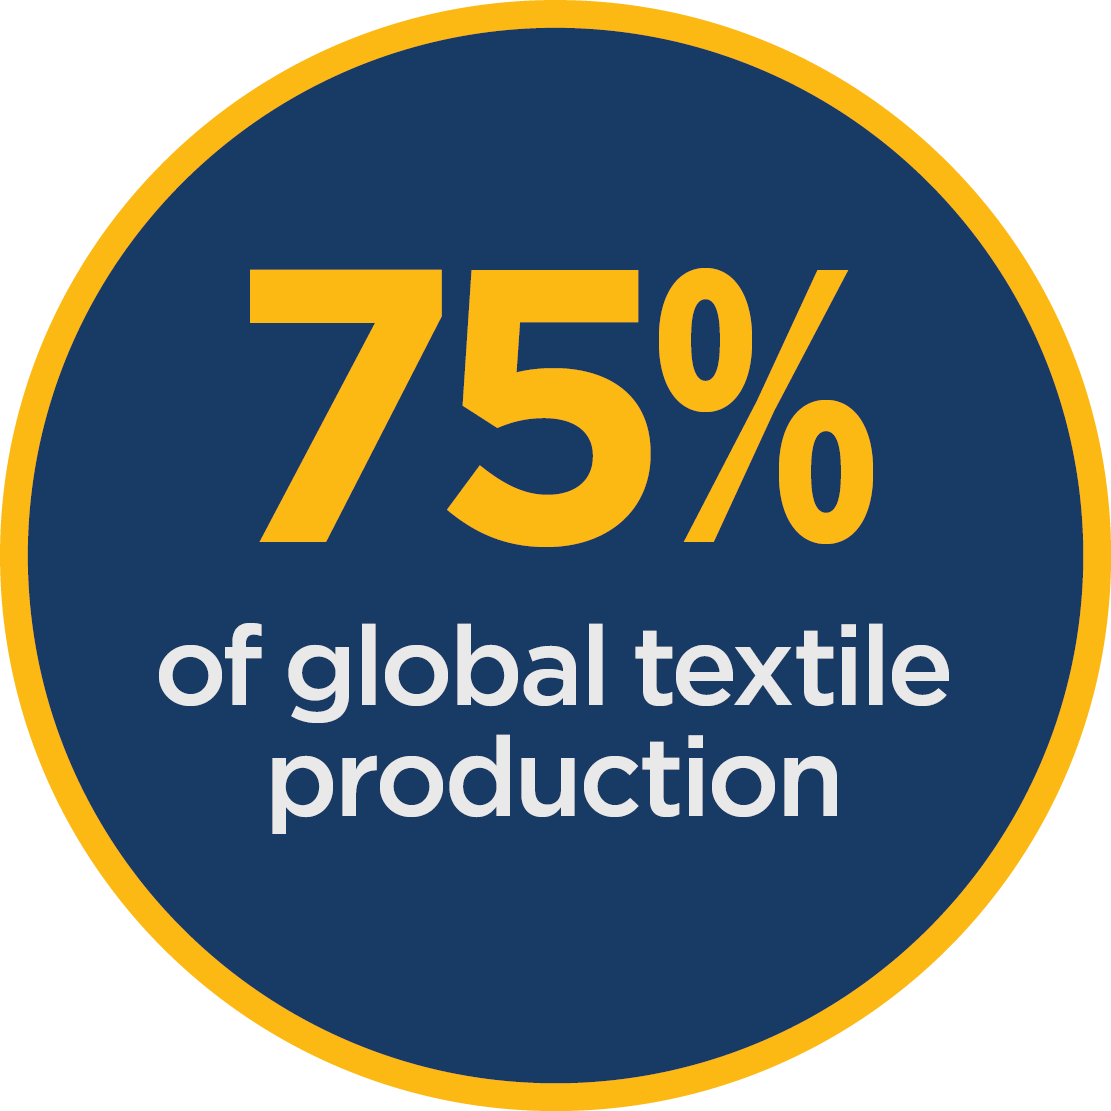 75% of global textile production